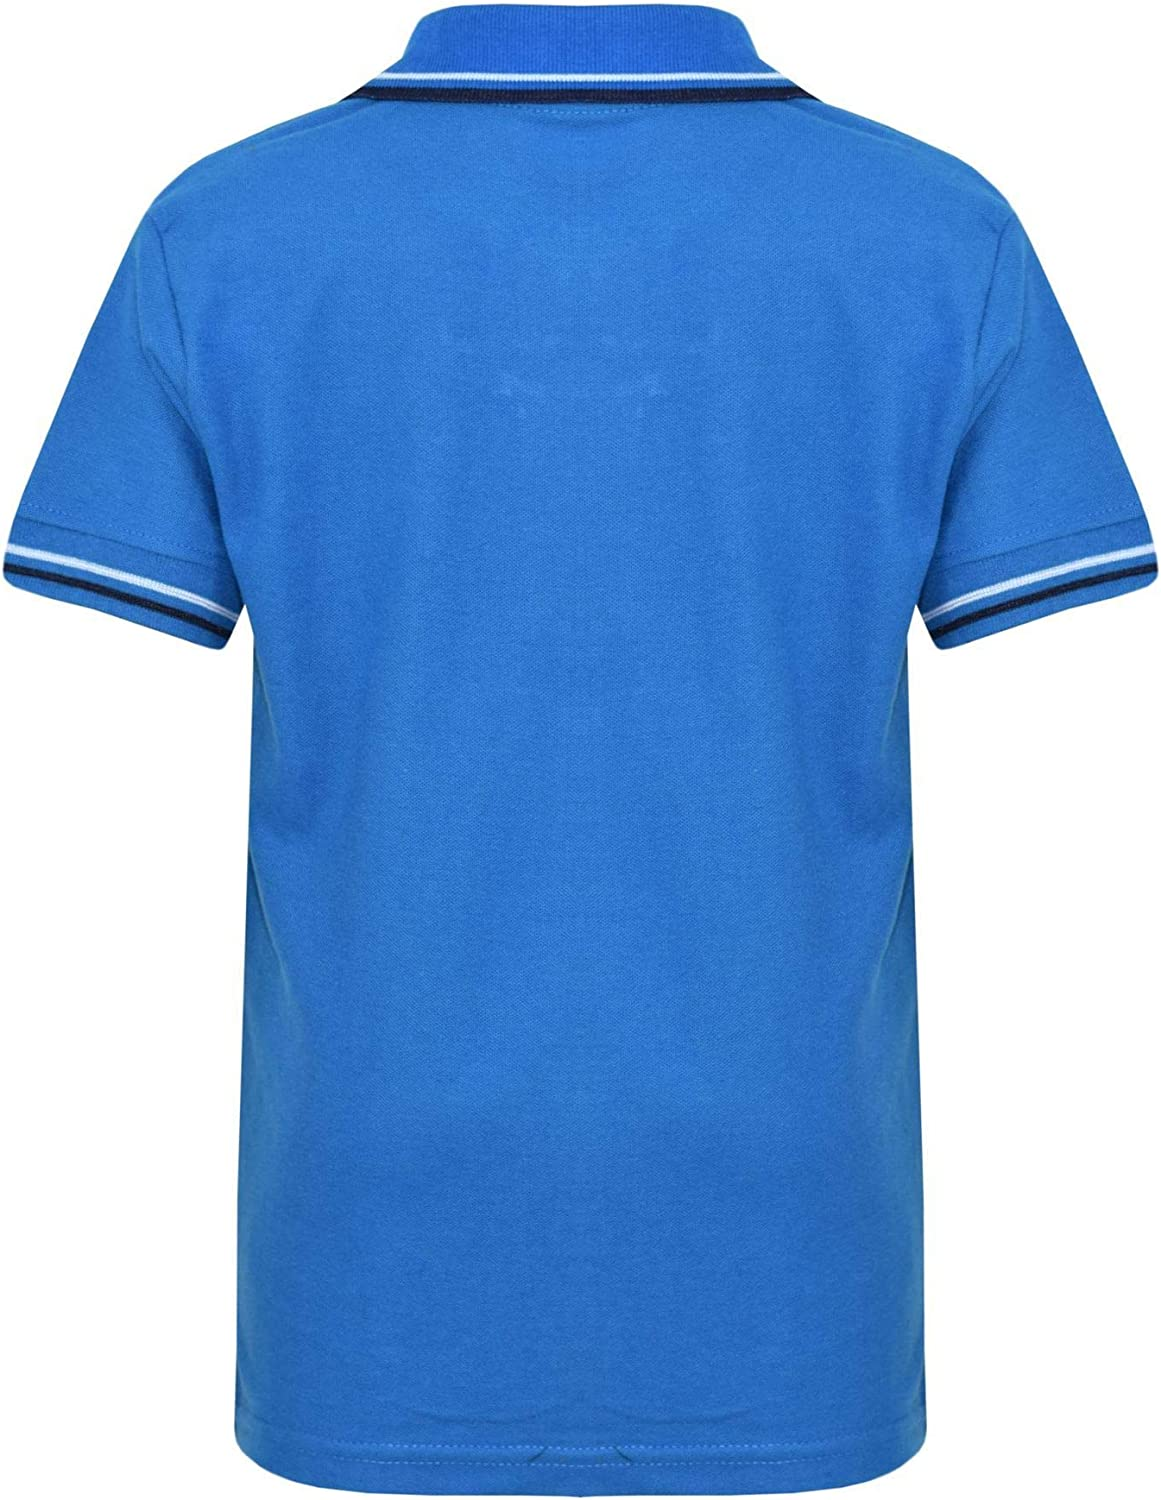 A2Z 4 Kids Kids Boys Girls Polo T Shirts Designers Plain Color School T-Shirts PE Tops New Age 3 4 5 6 7 8 9 10 11 12 13 Years